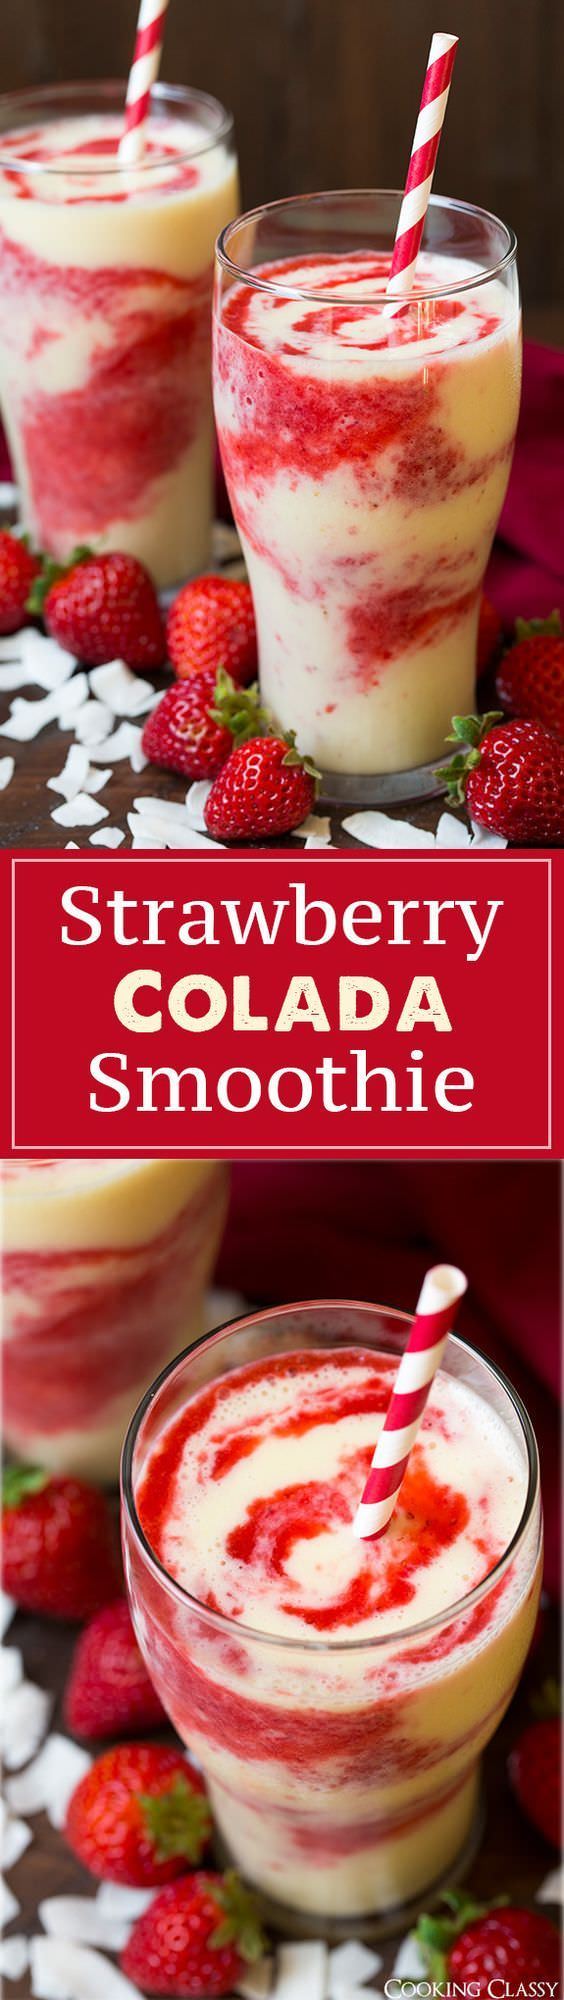 In summer you can drink as many smoothies as you can right? So why not learn this Strawberry Colada Smoothie recipe? It's wonderful to taste!